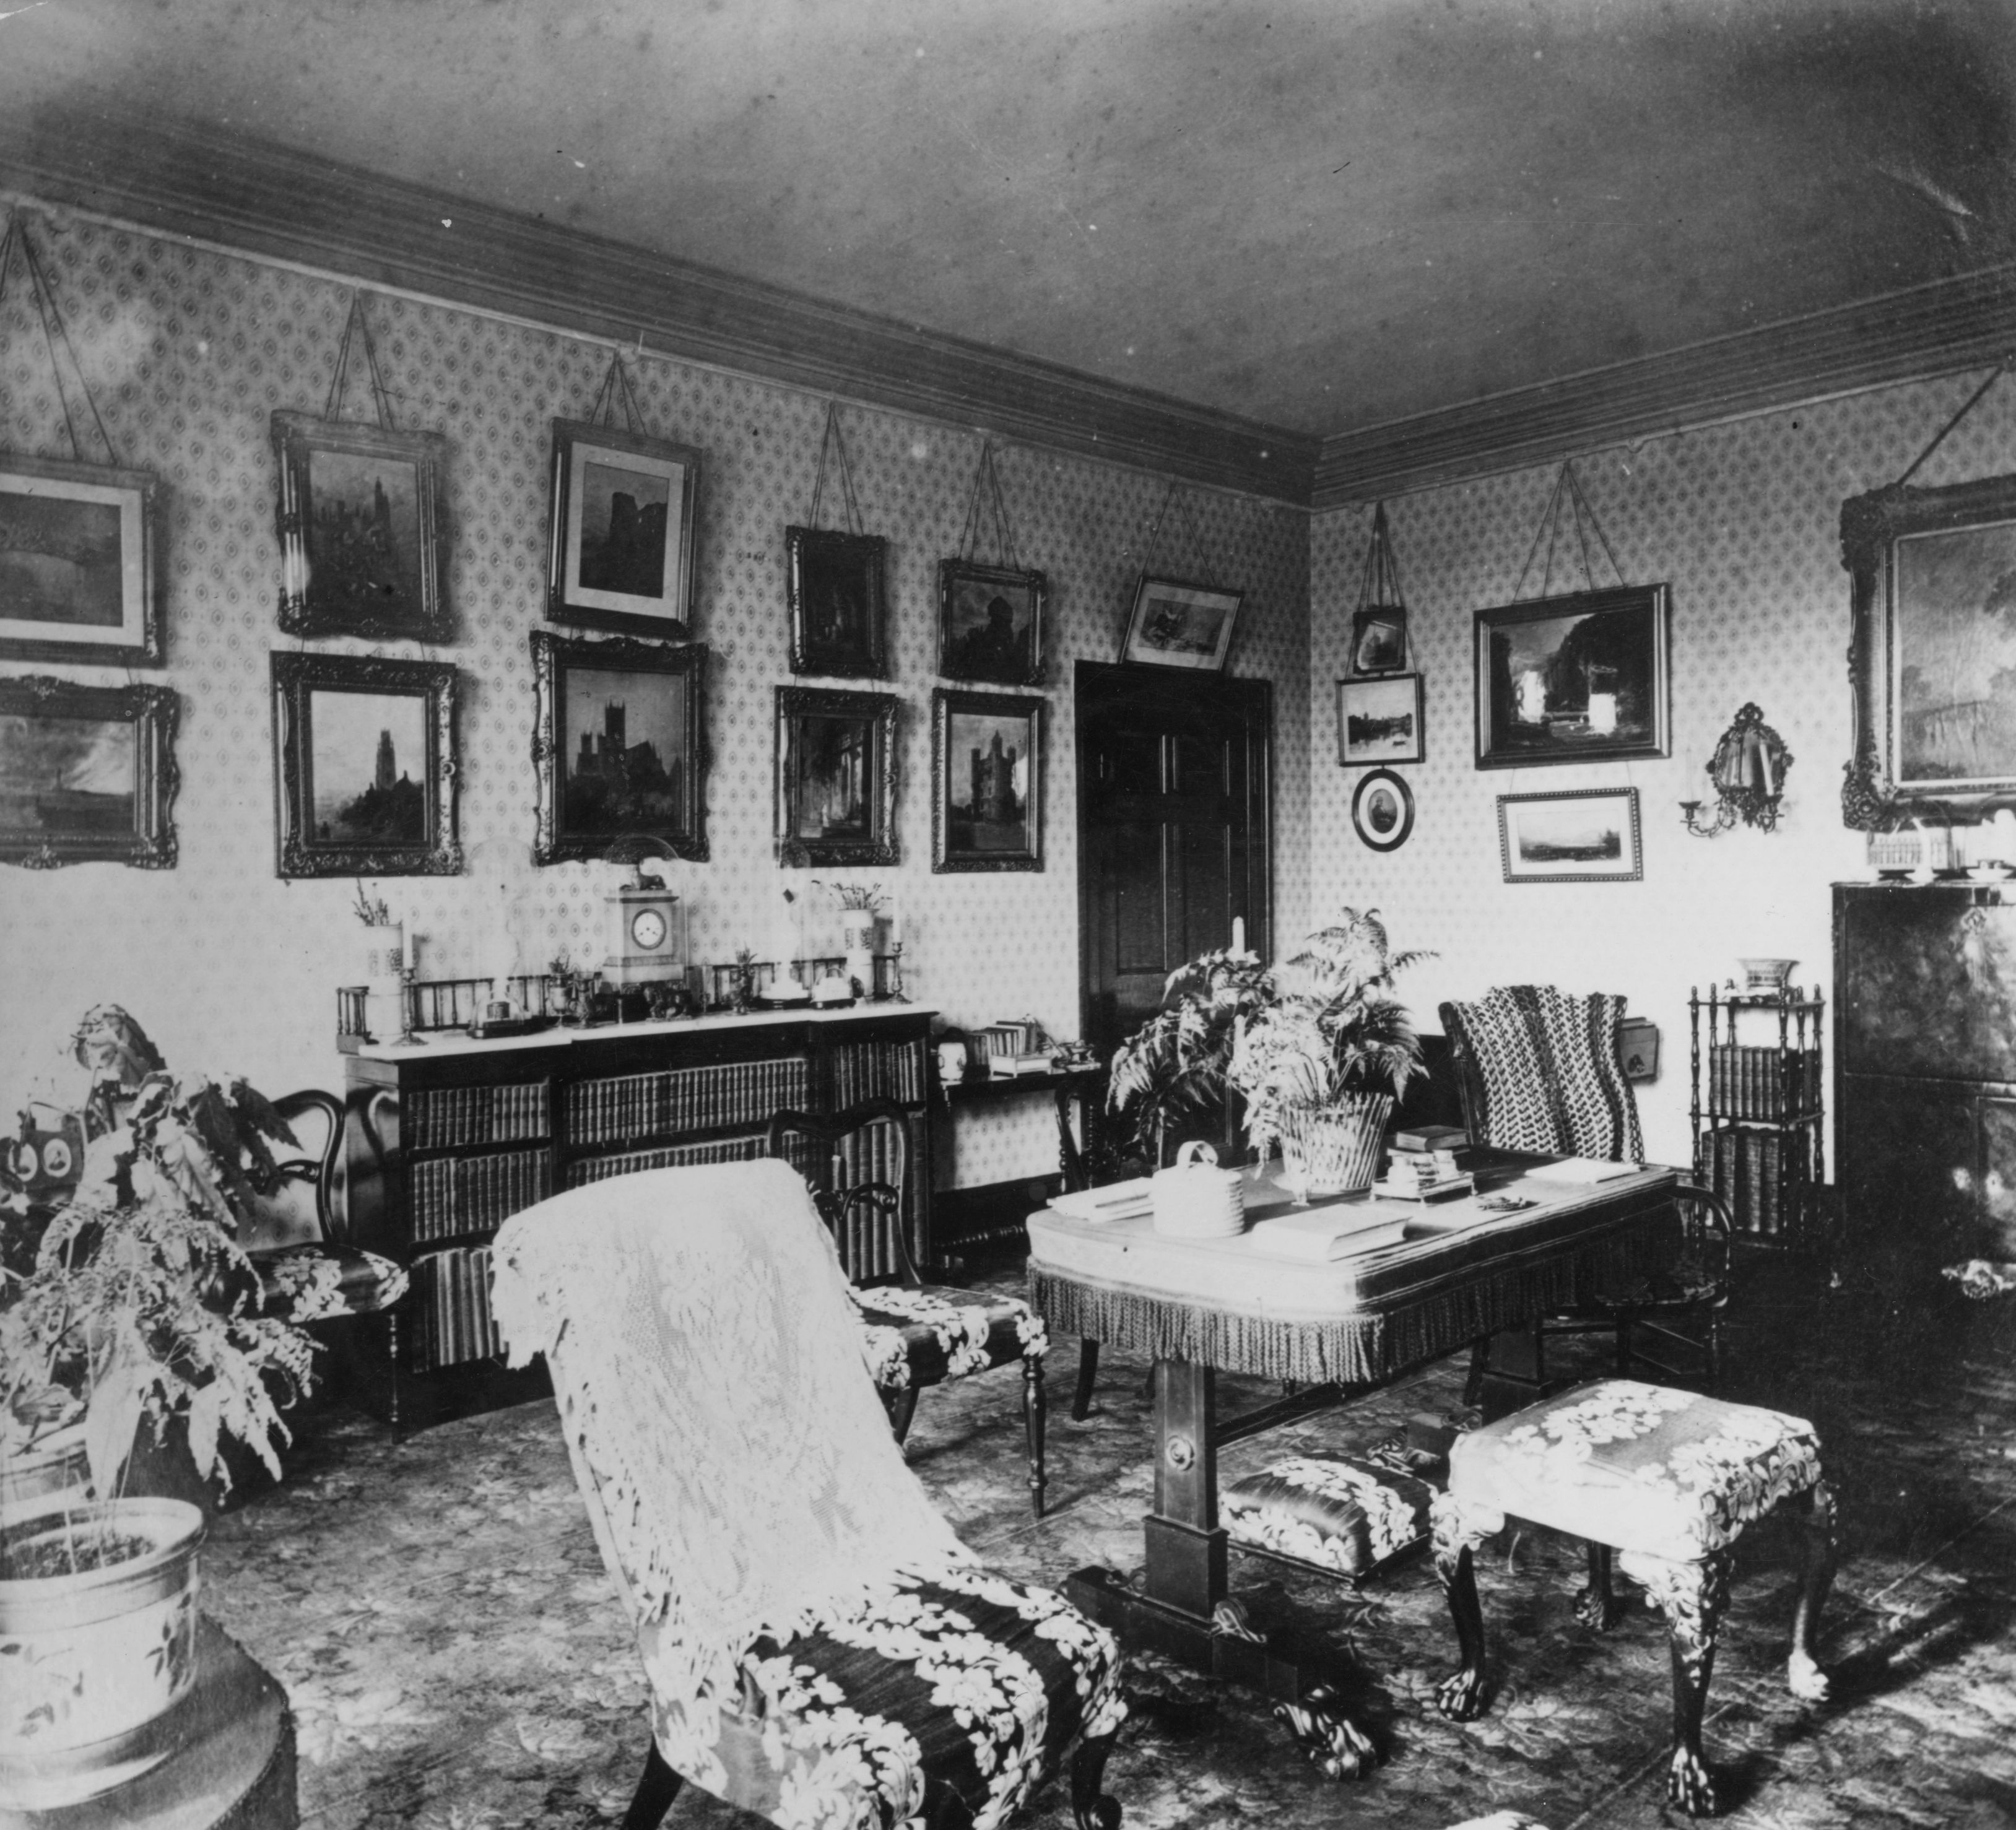 A Victorian drawing room with pictures in heavy frames and ornately covered furniture, c1860. (Hulton Archive/Getty Images)